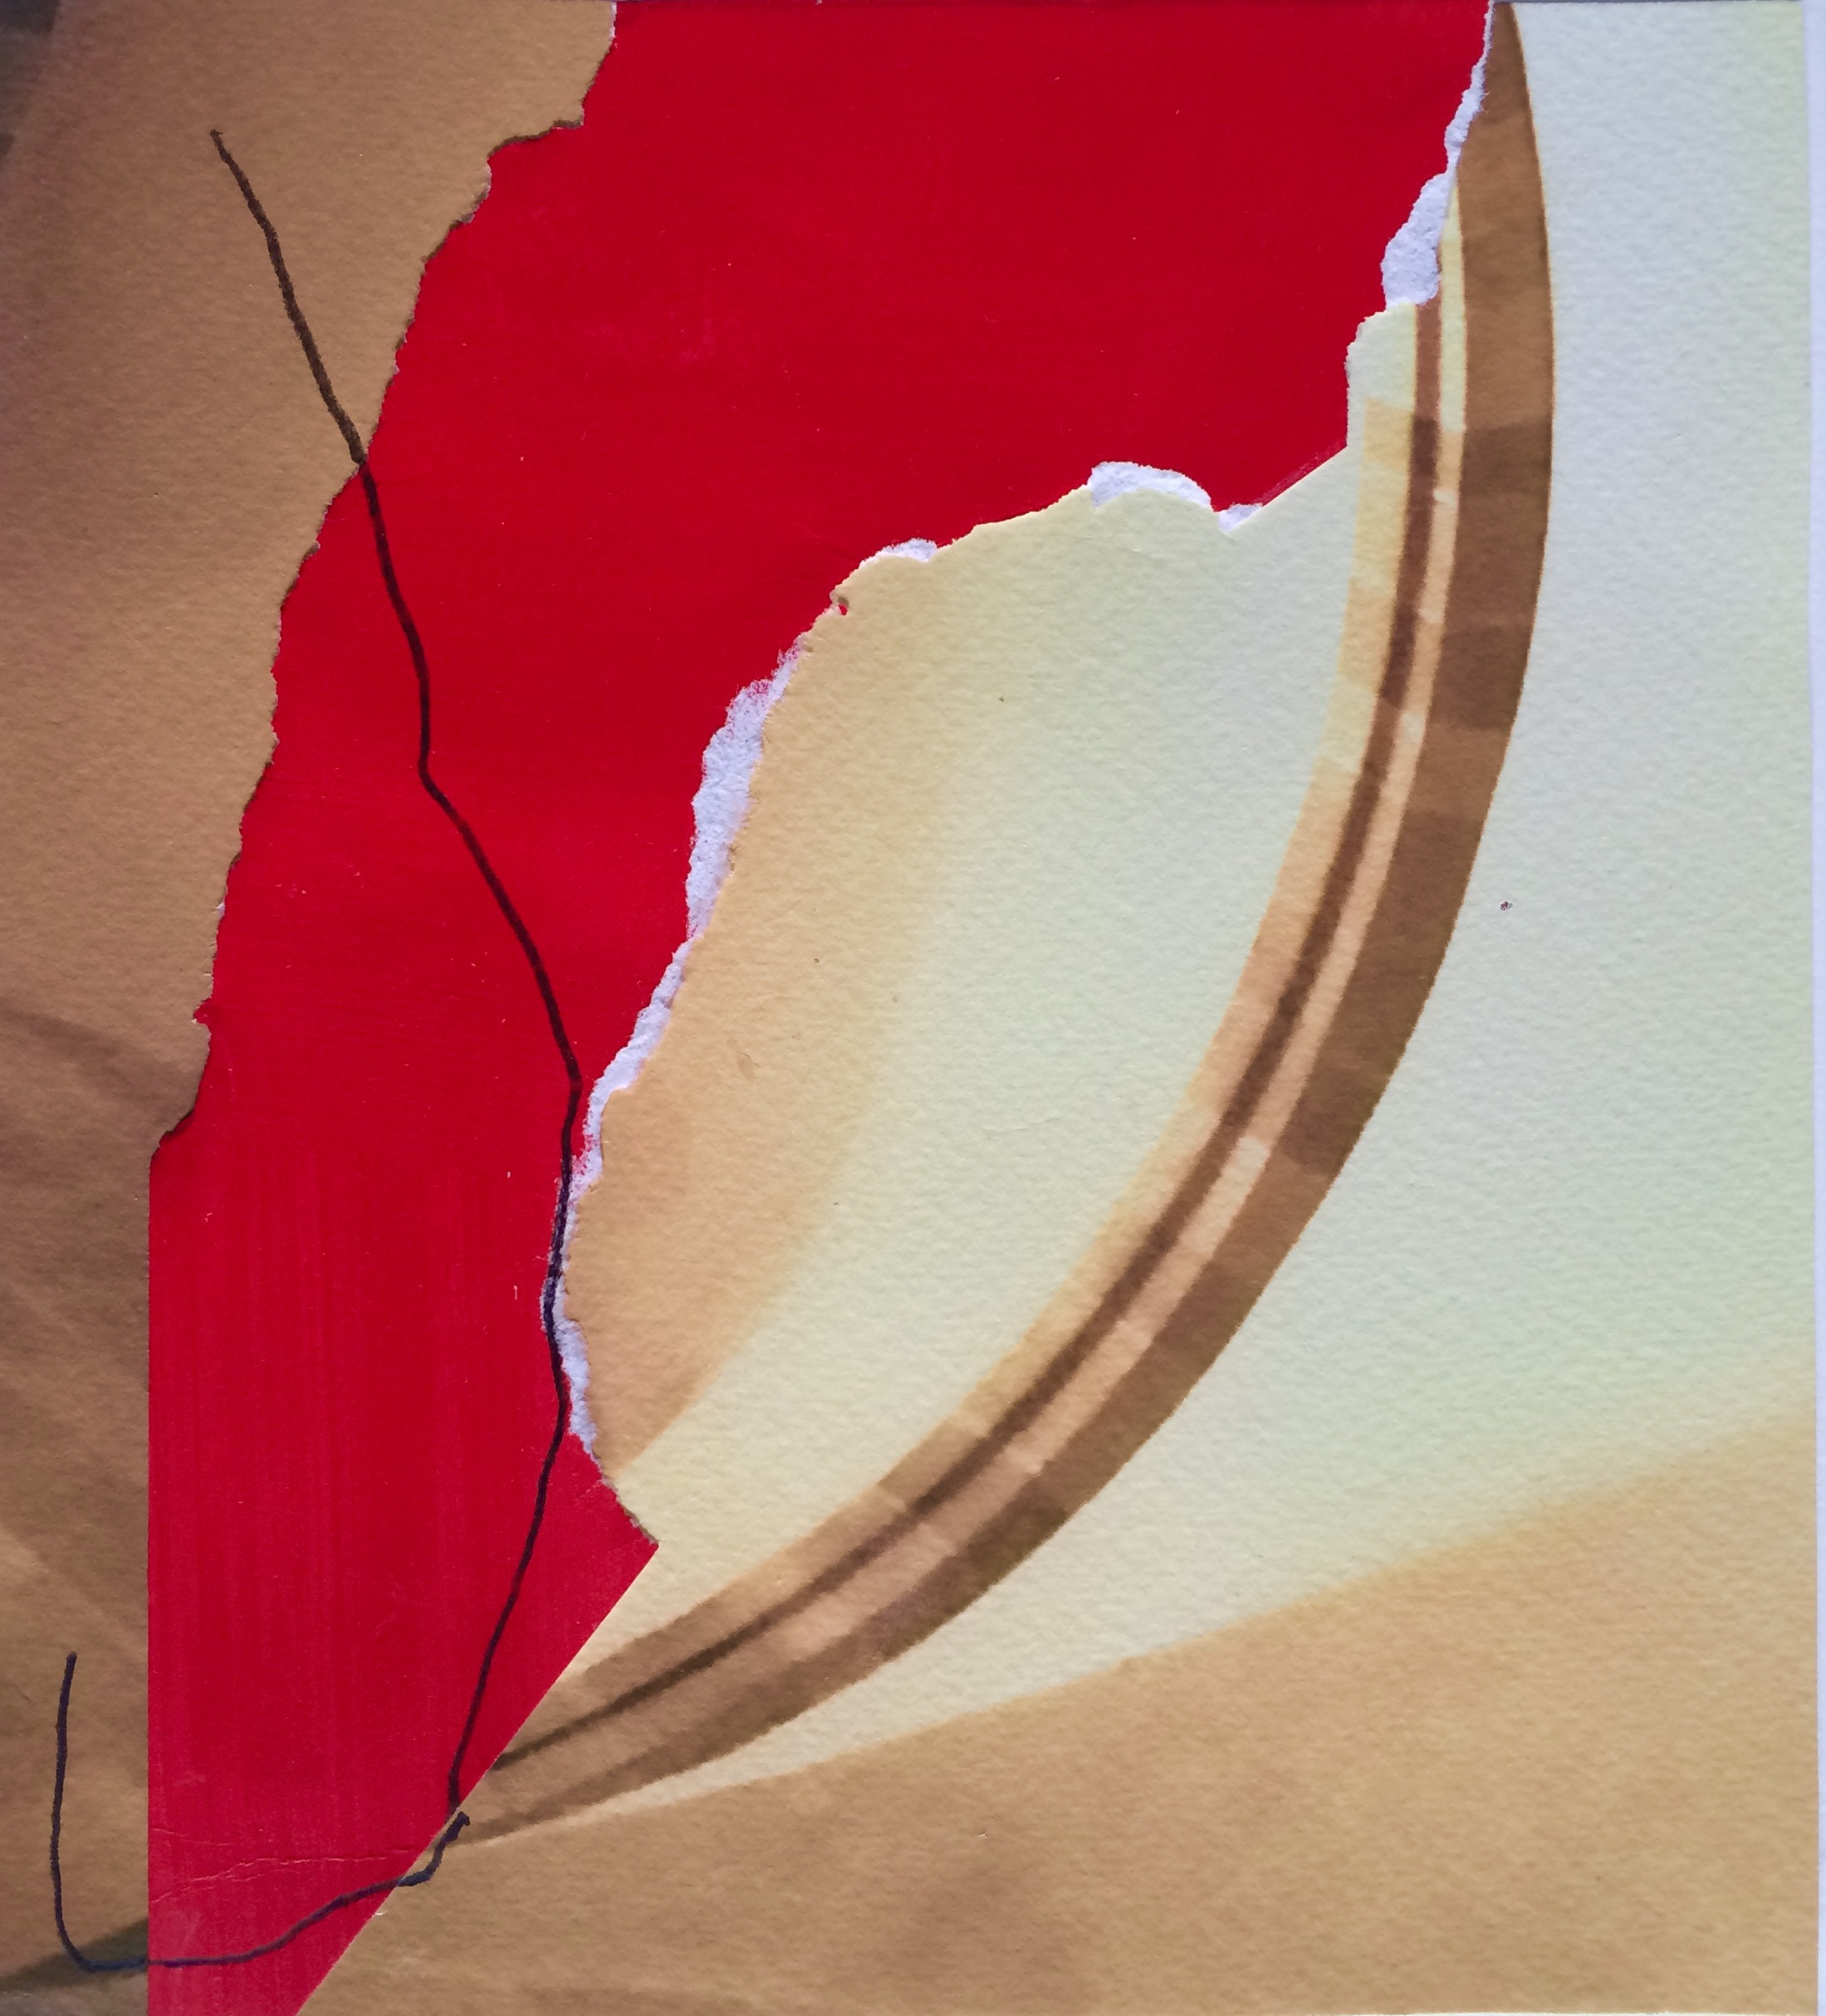 Tuscany: Photo with Red and Line, 2015, original photo with paper and pencil, 7.75 x 7 in, $350